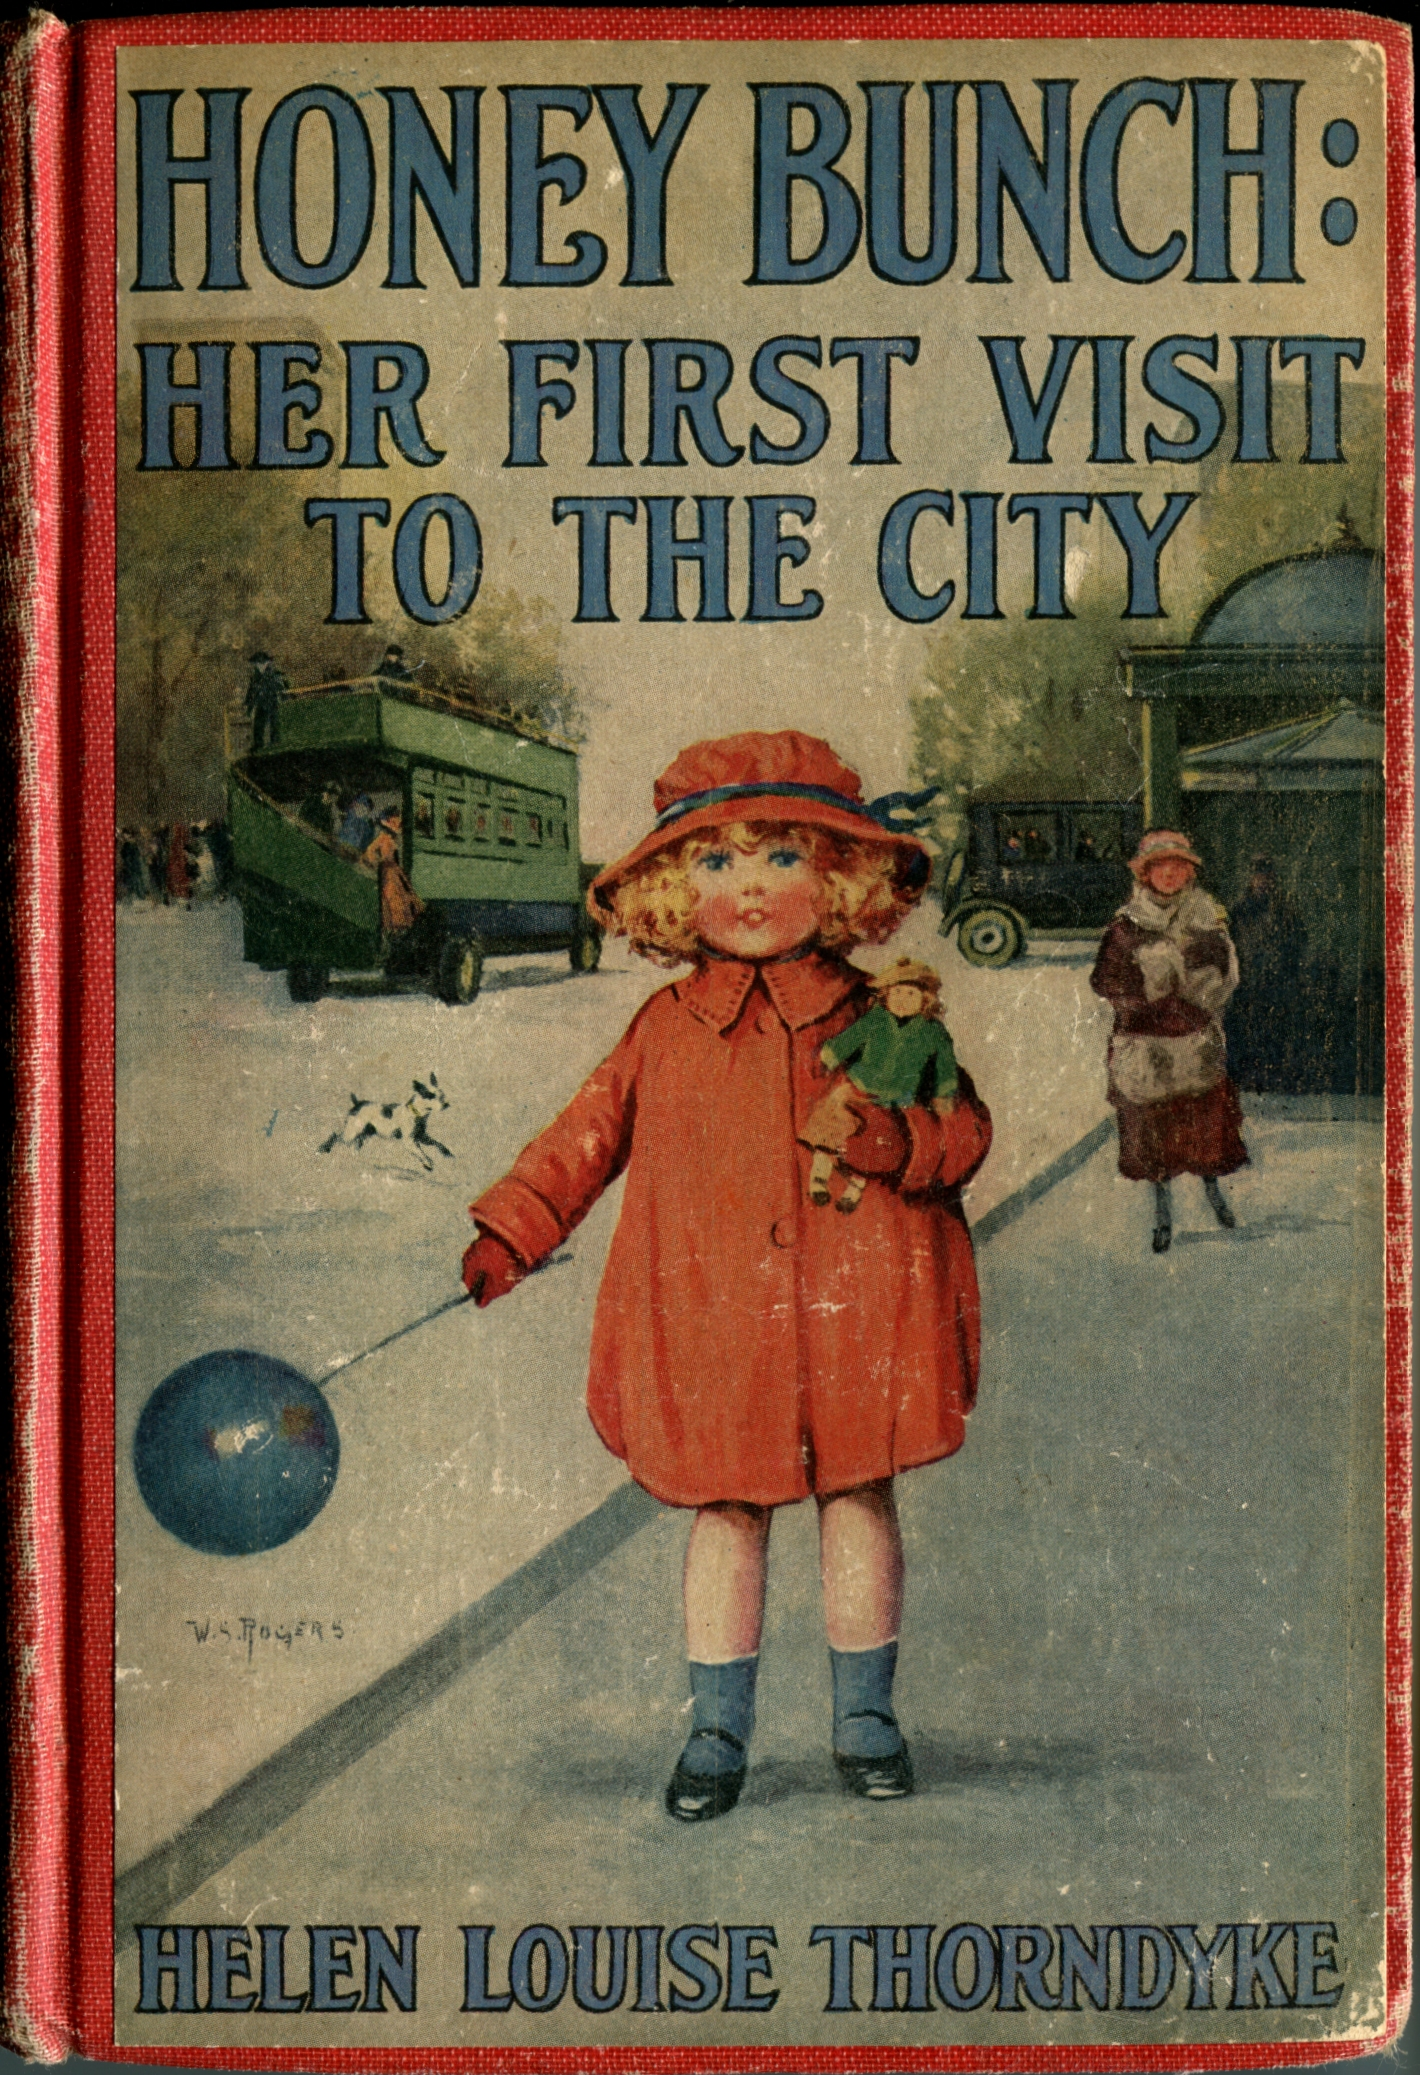 Sisters, Schoolgirls, and Sleuths: Girls Series Books in America